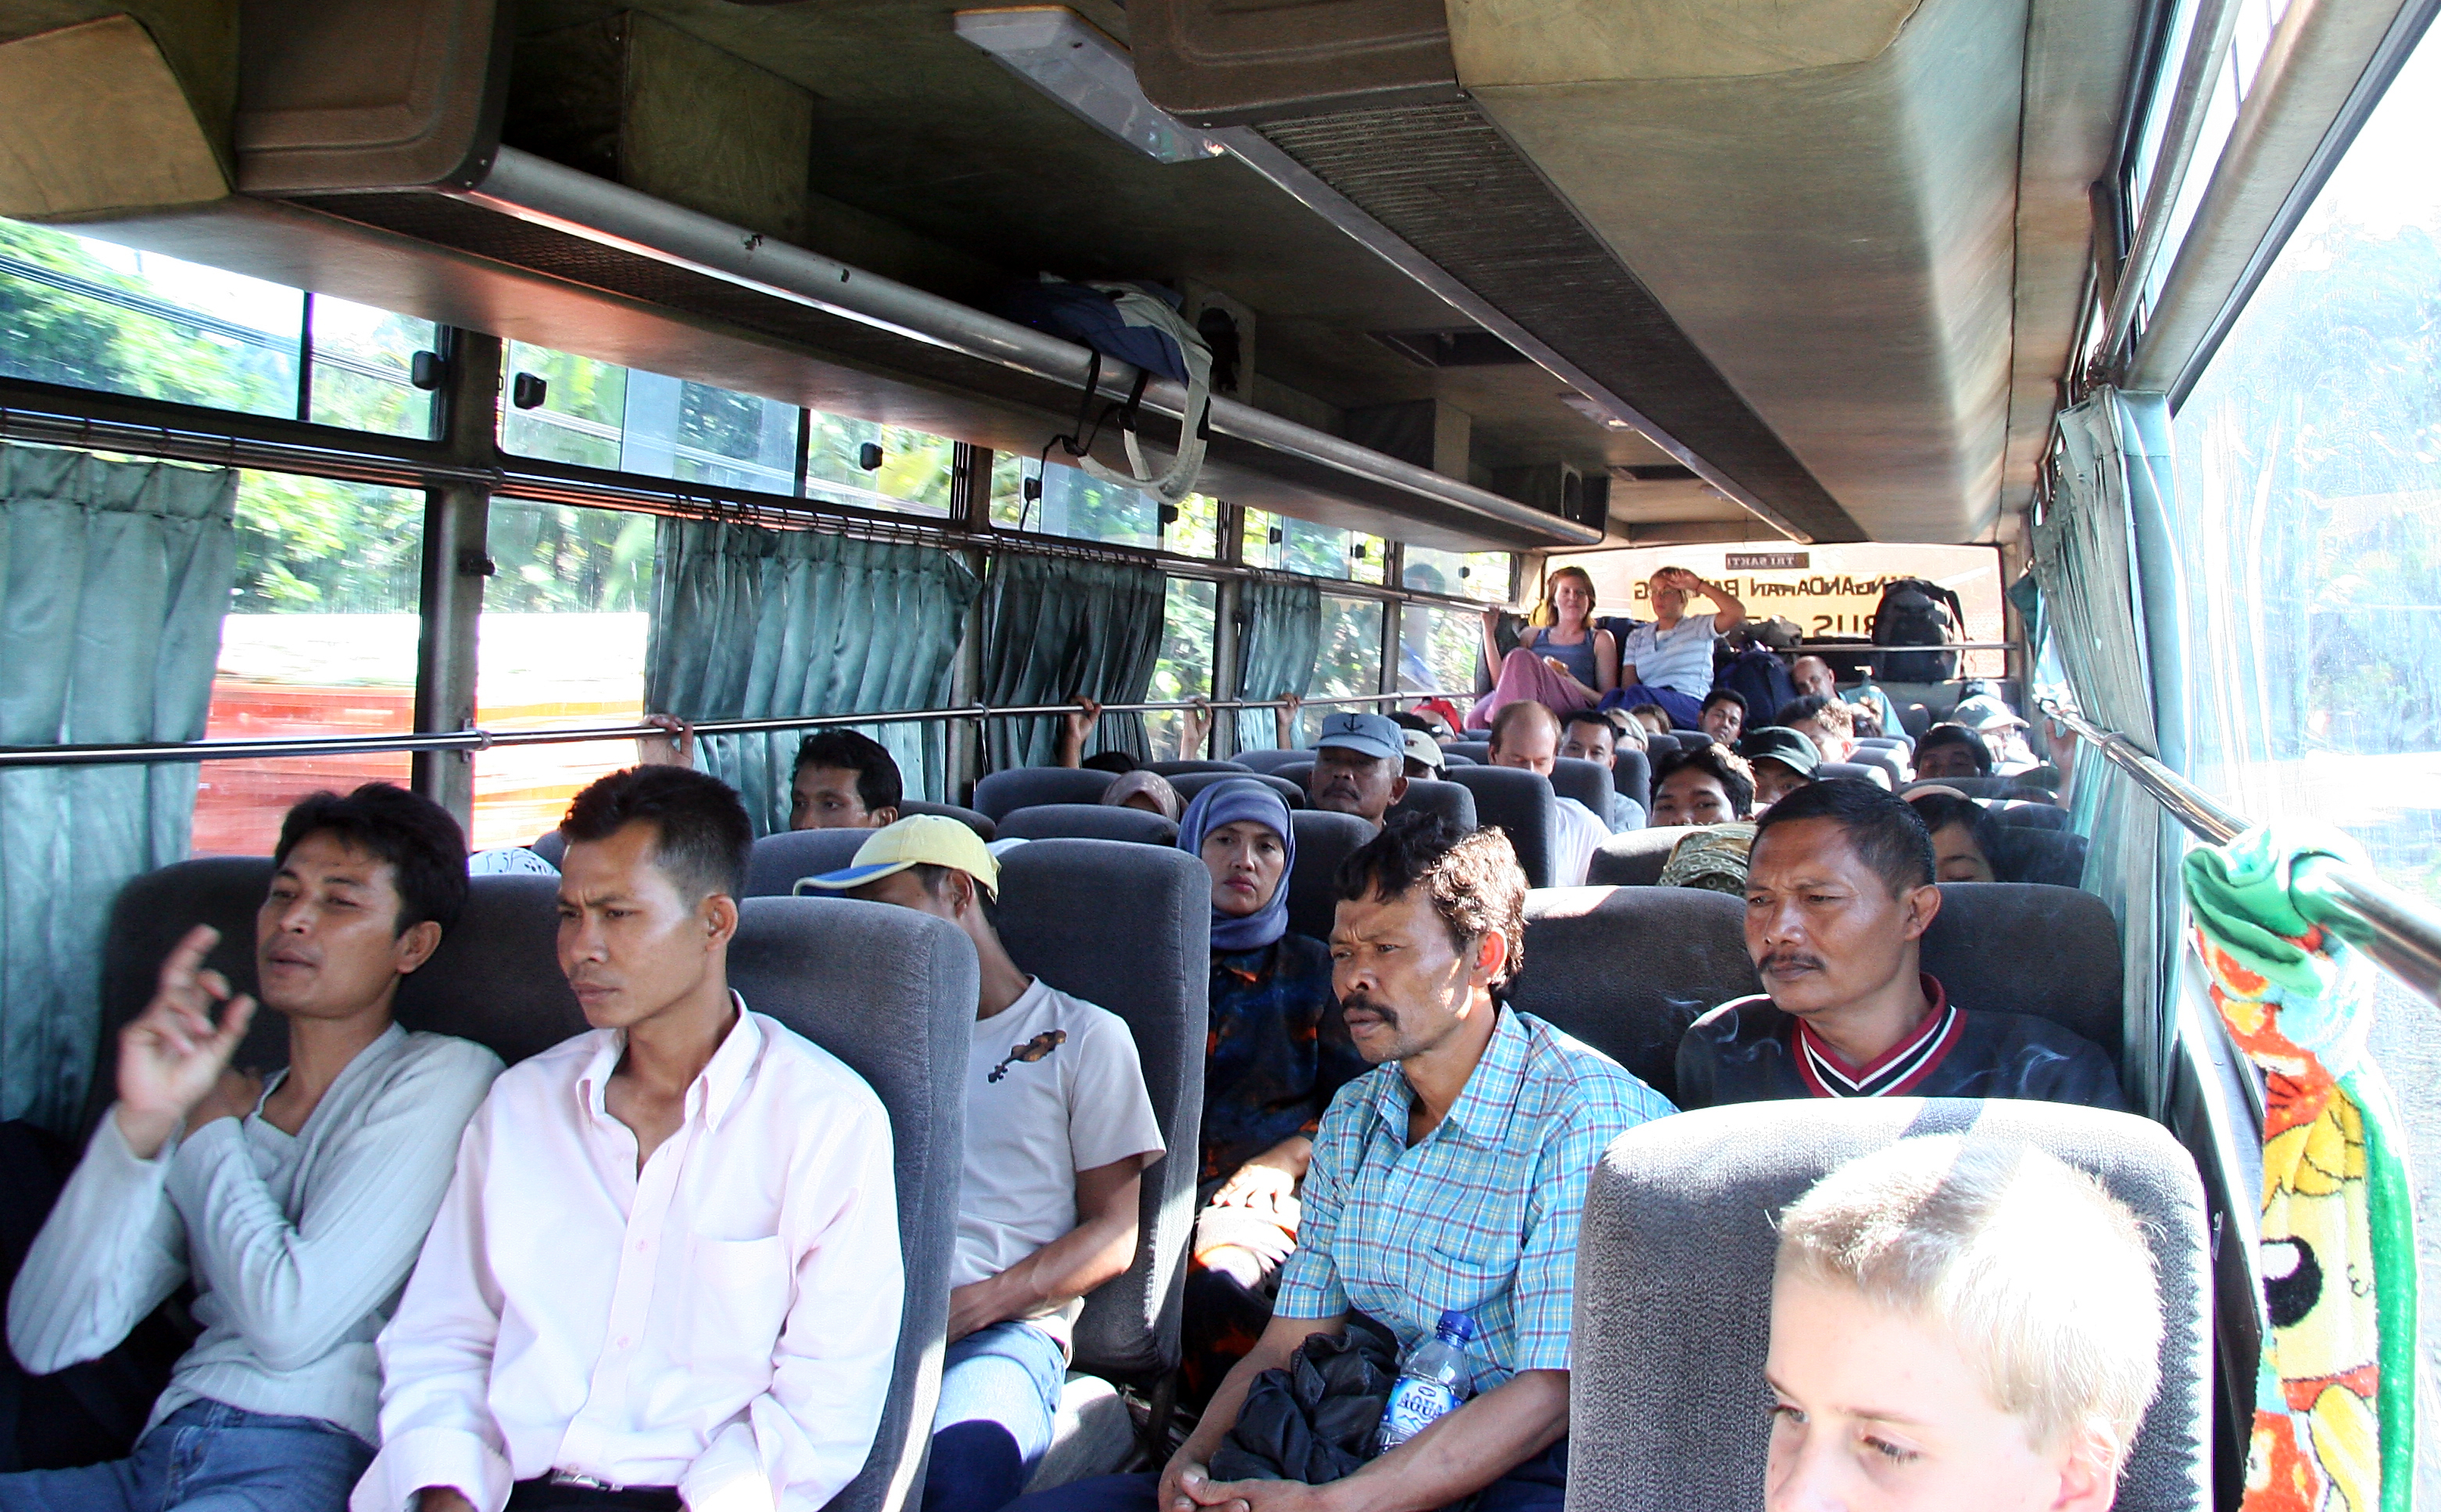 In the coach, Java Indonesia.jpg